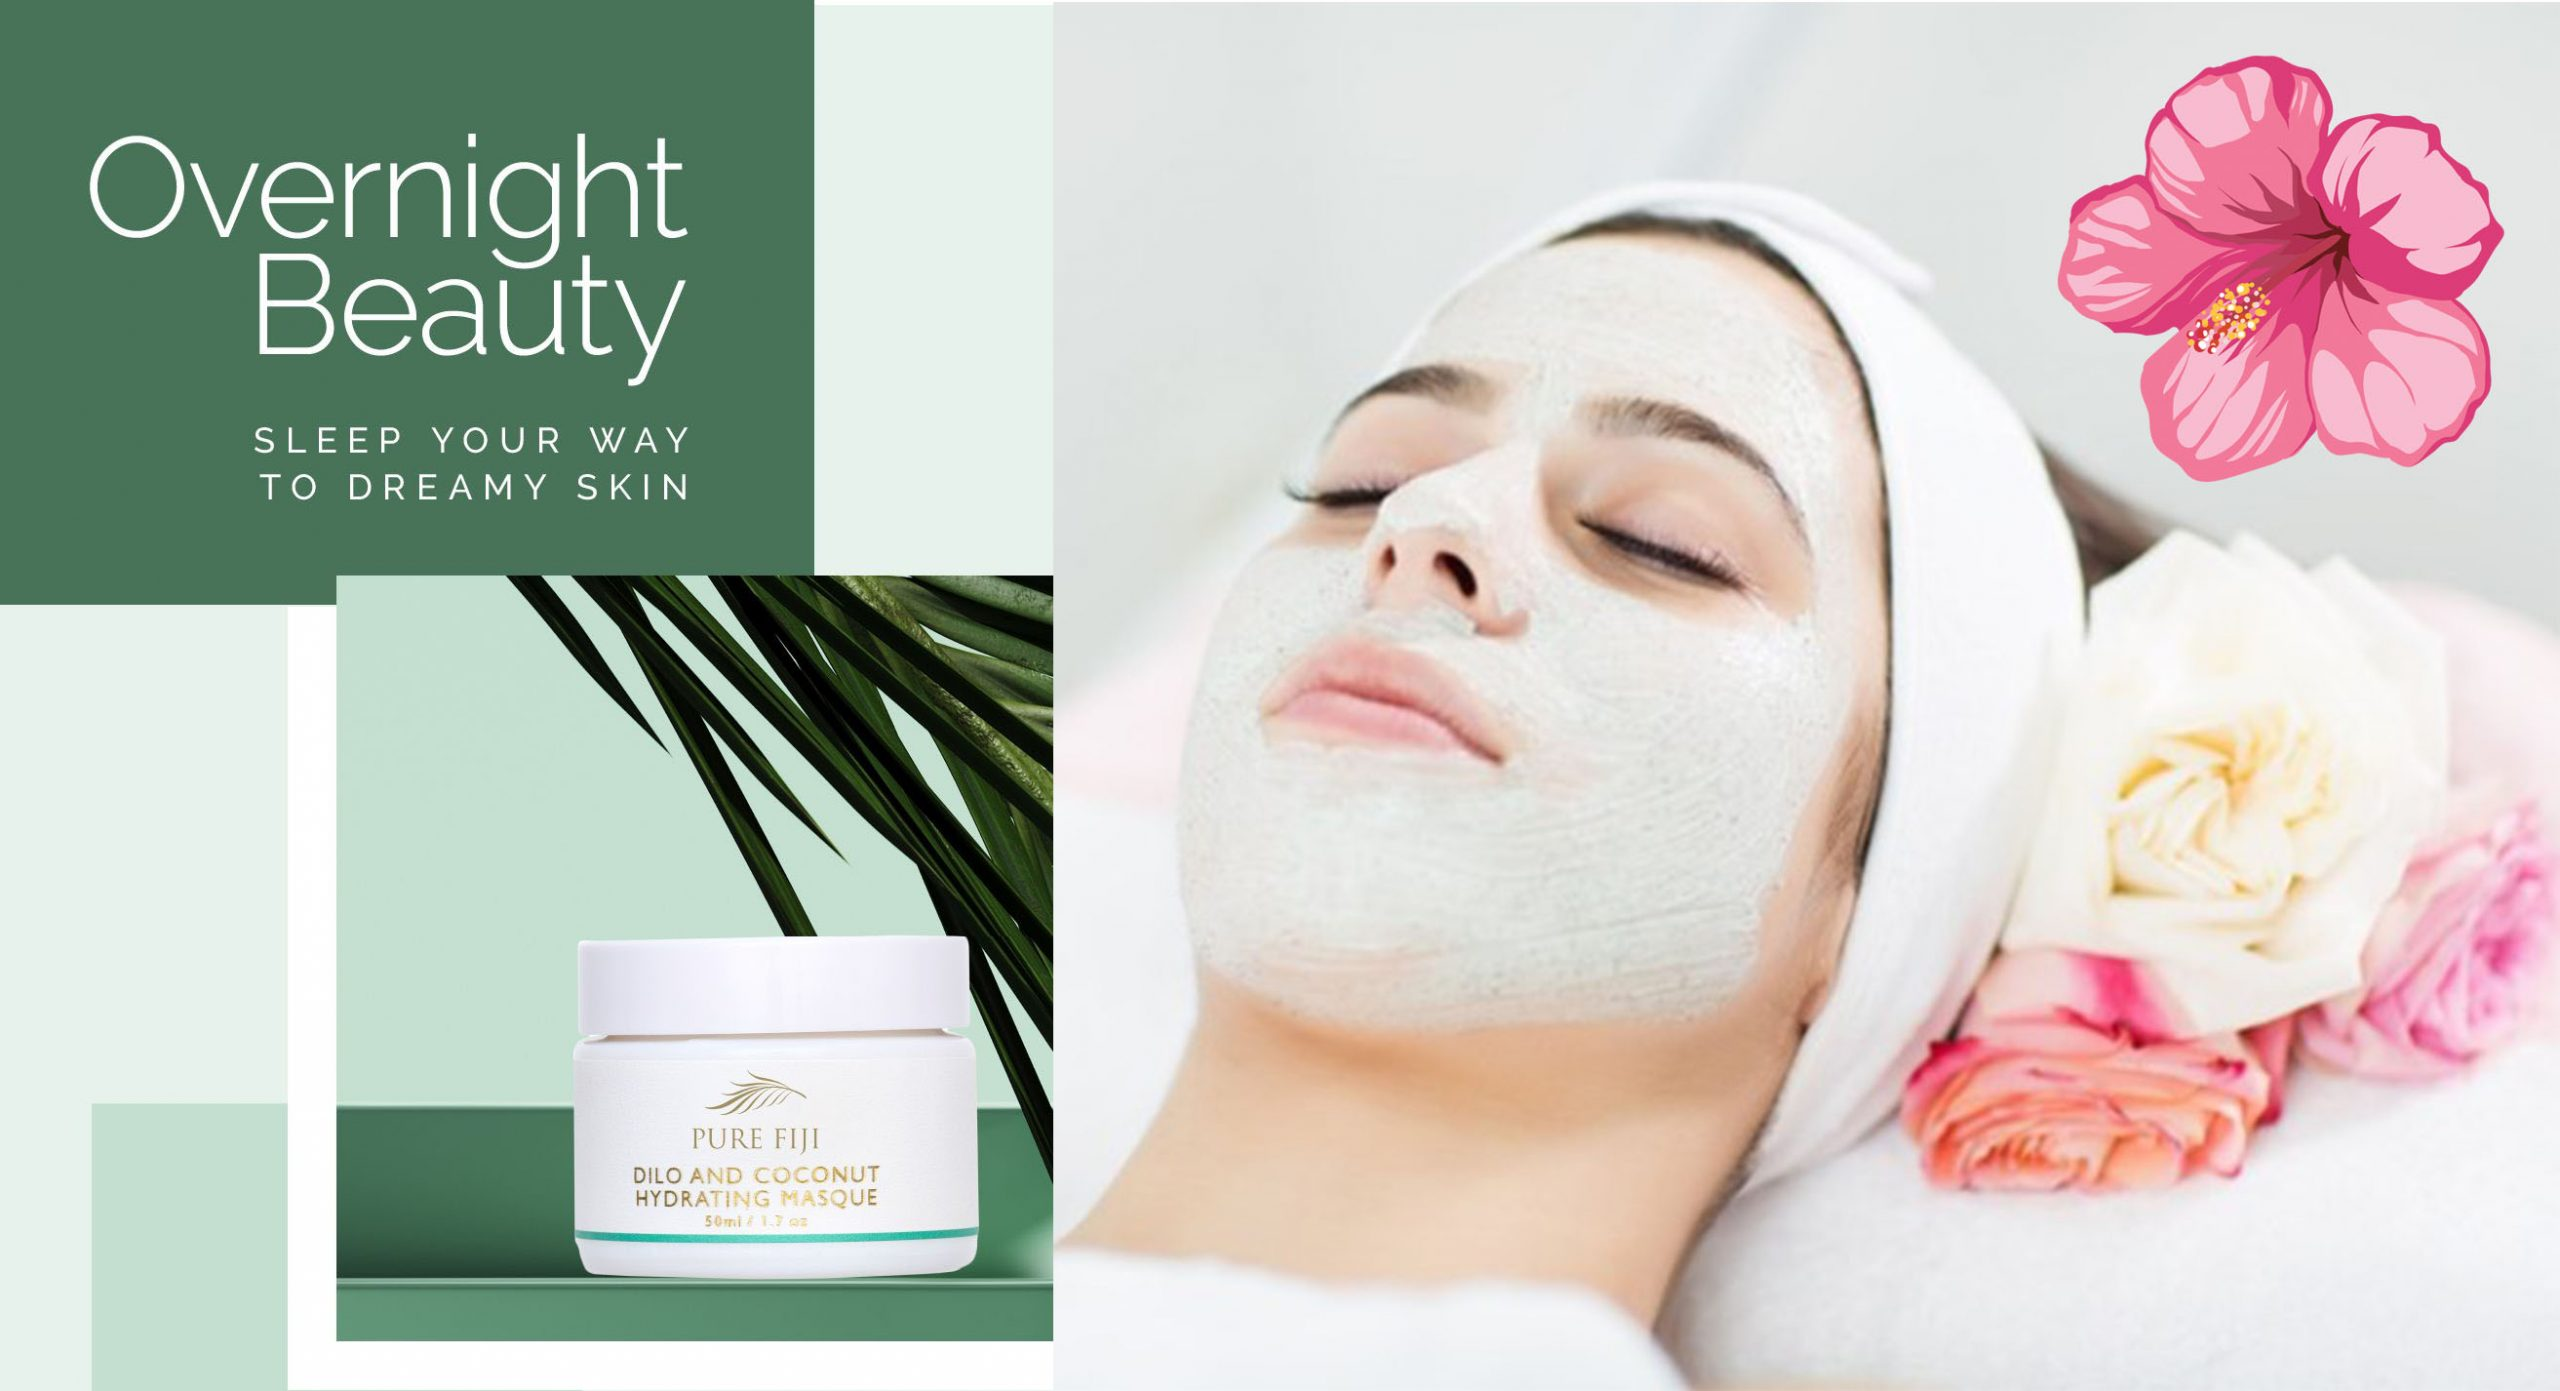 Over night beauty face masque